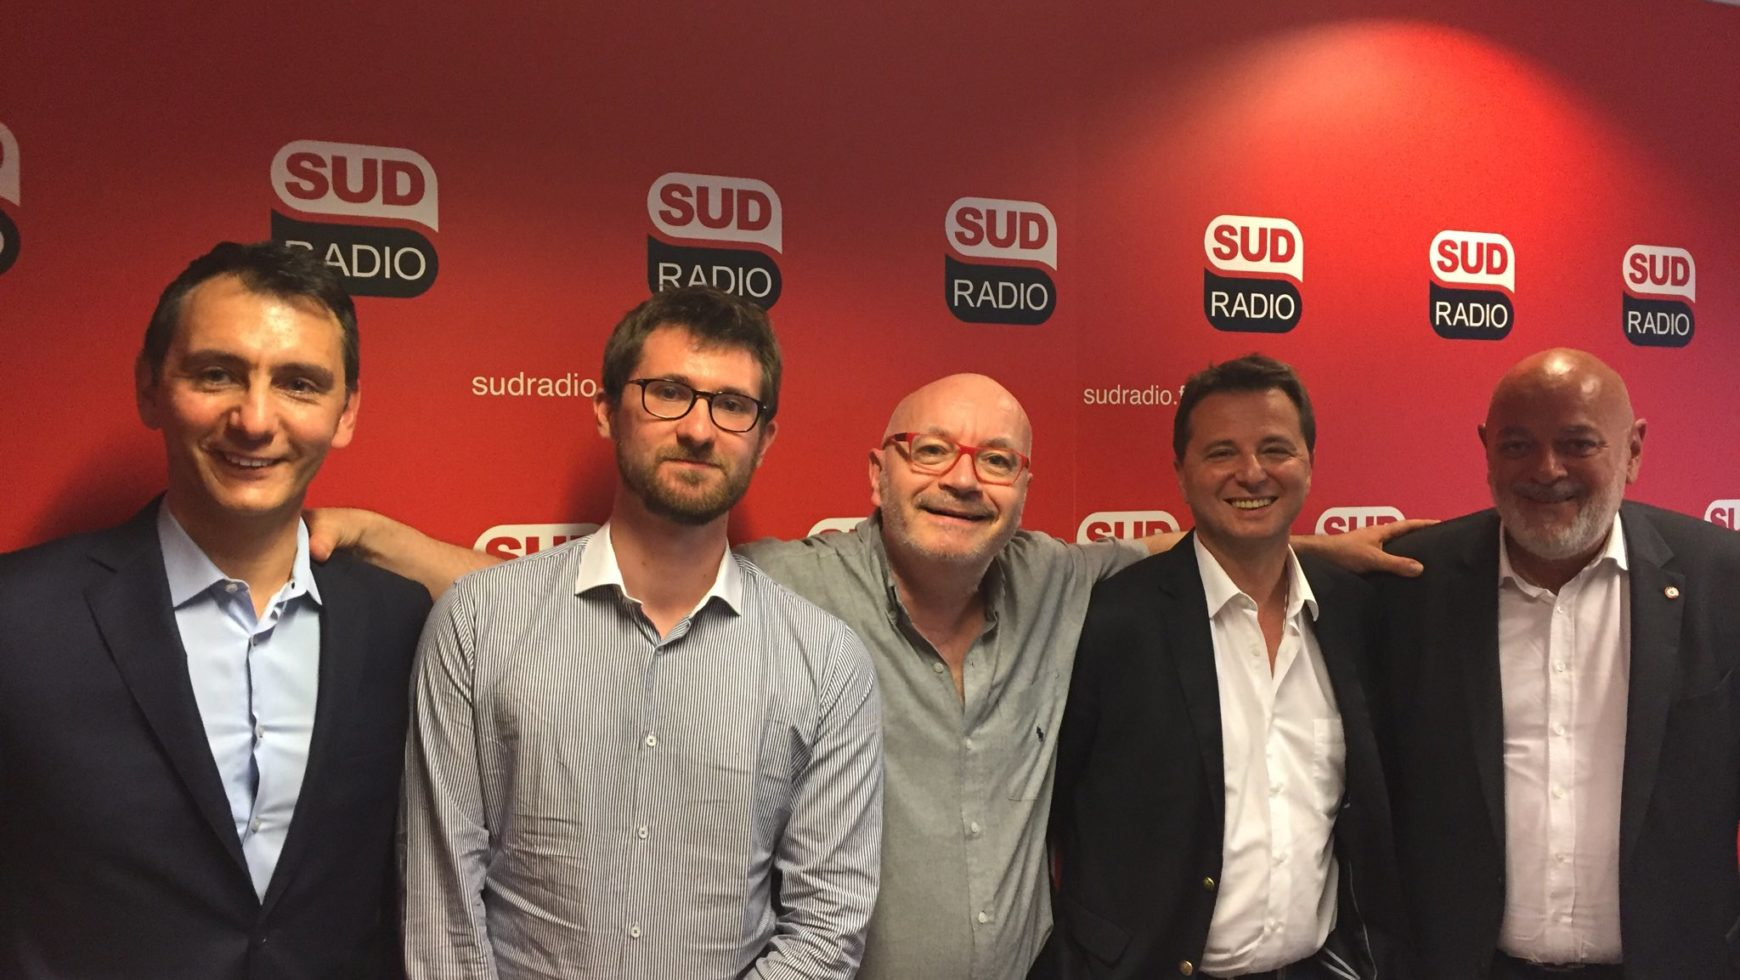 Replay de l'émission de Sud Radio du mardi 8 mai